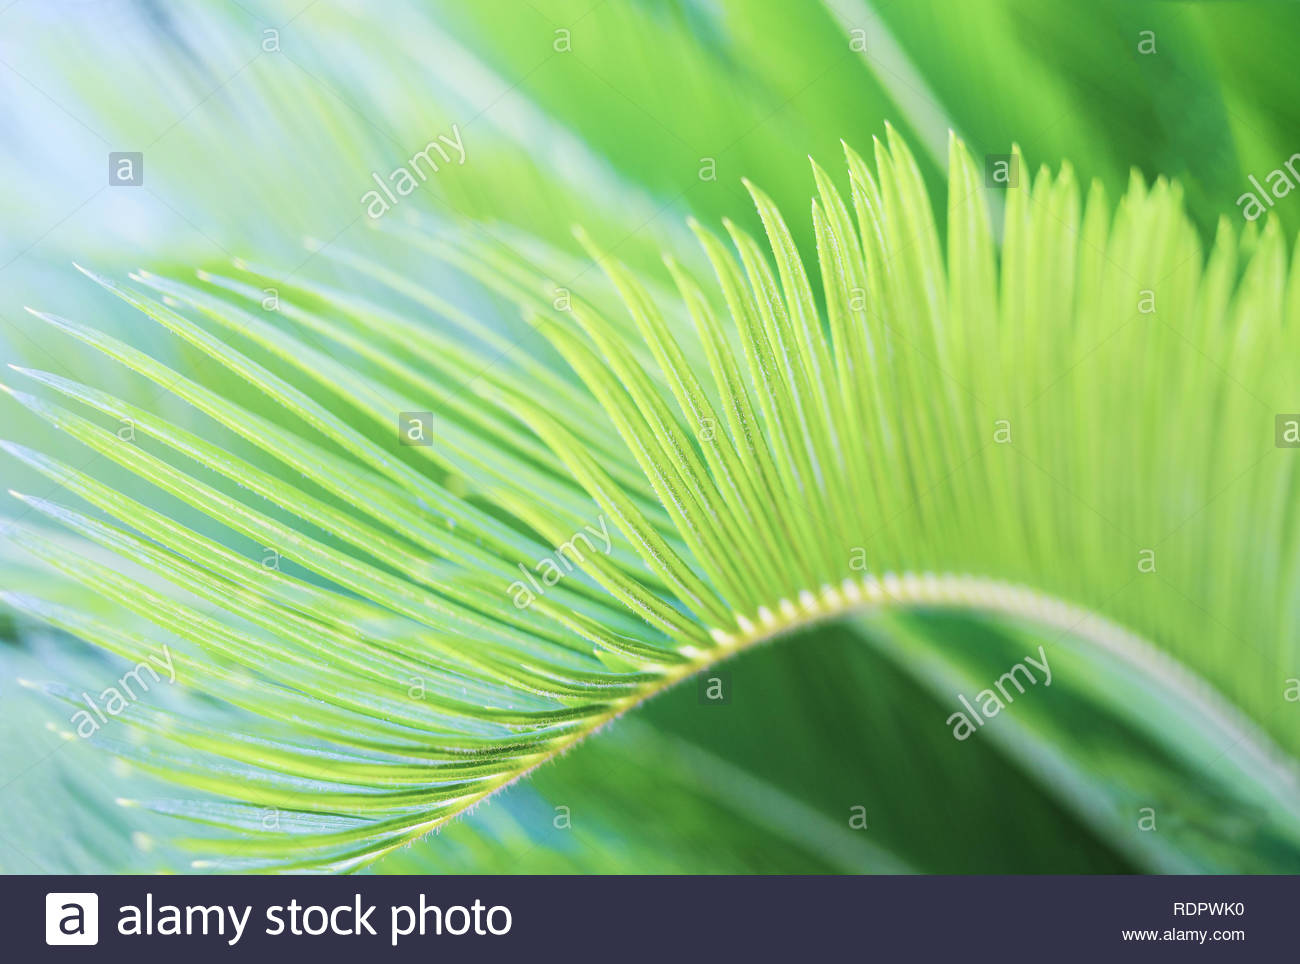 Natural blurred greenery tropic background with palm leaf Stock 1300x964